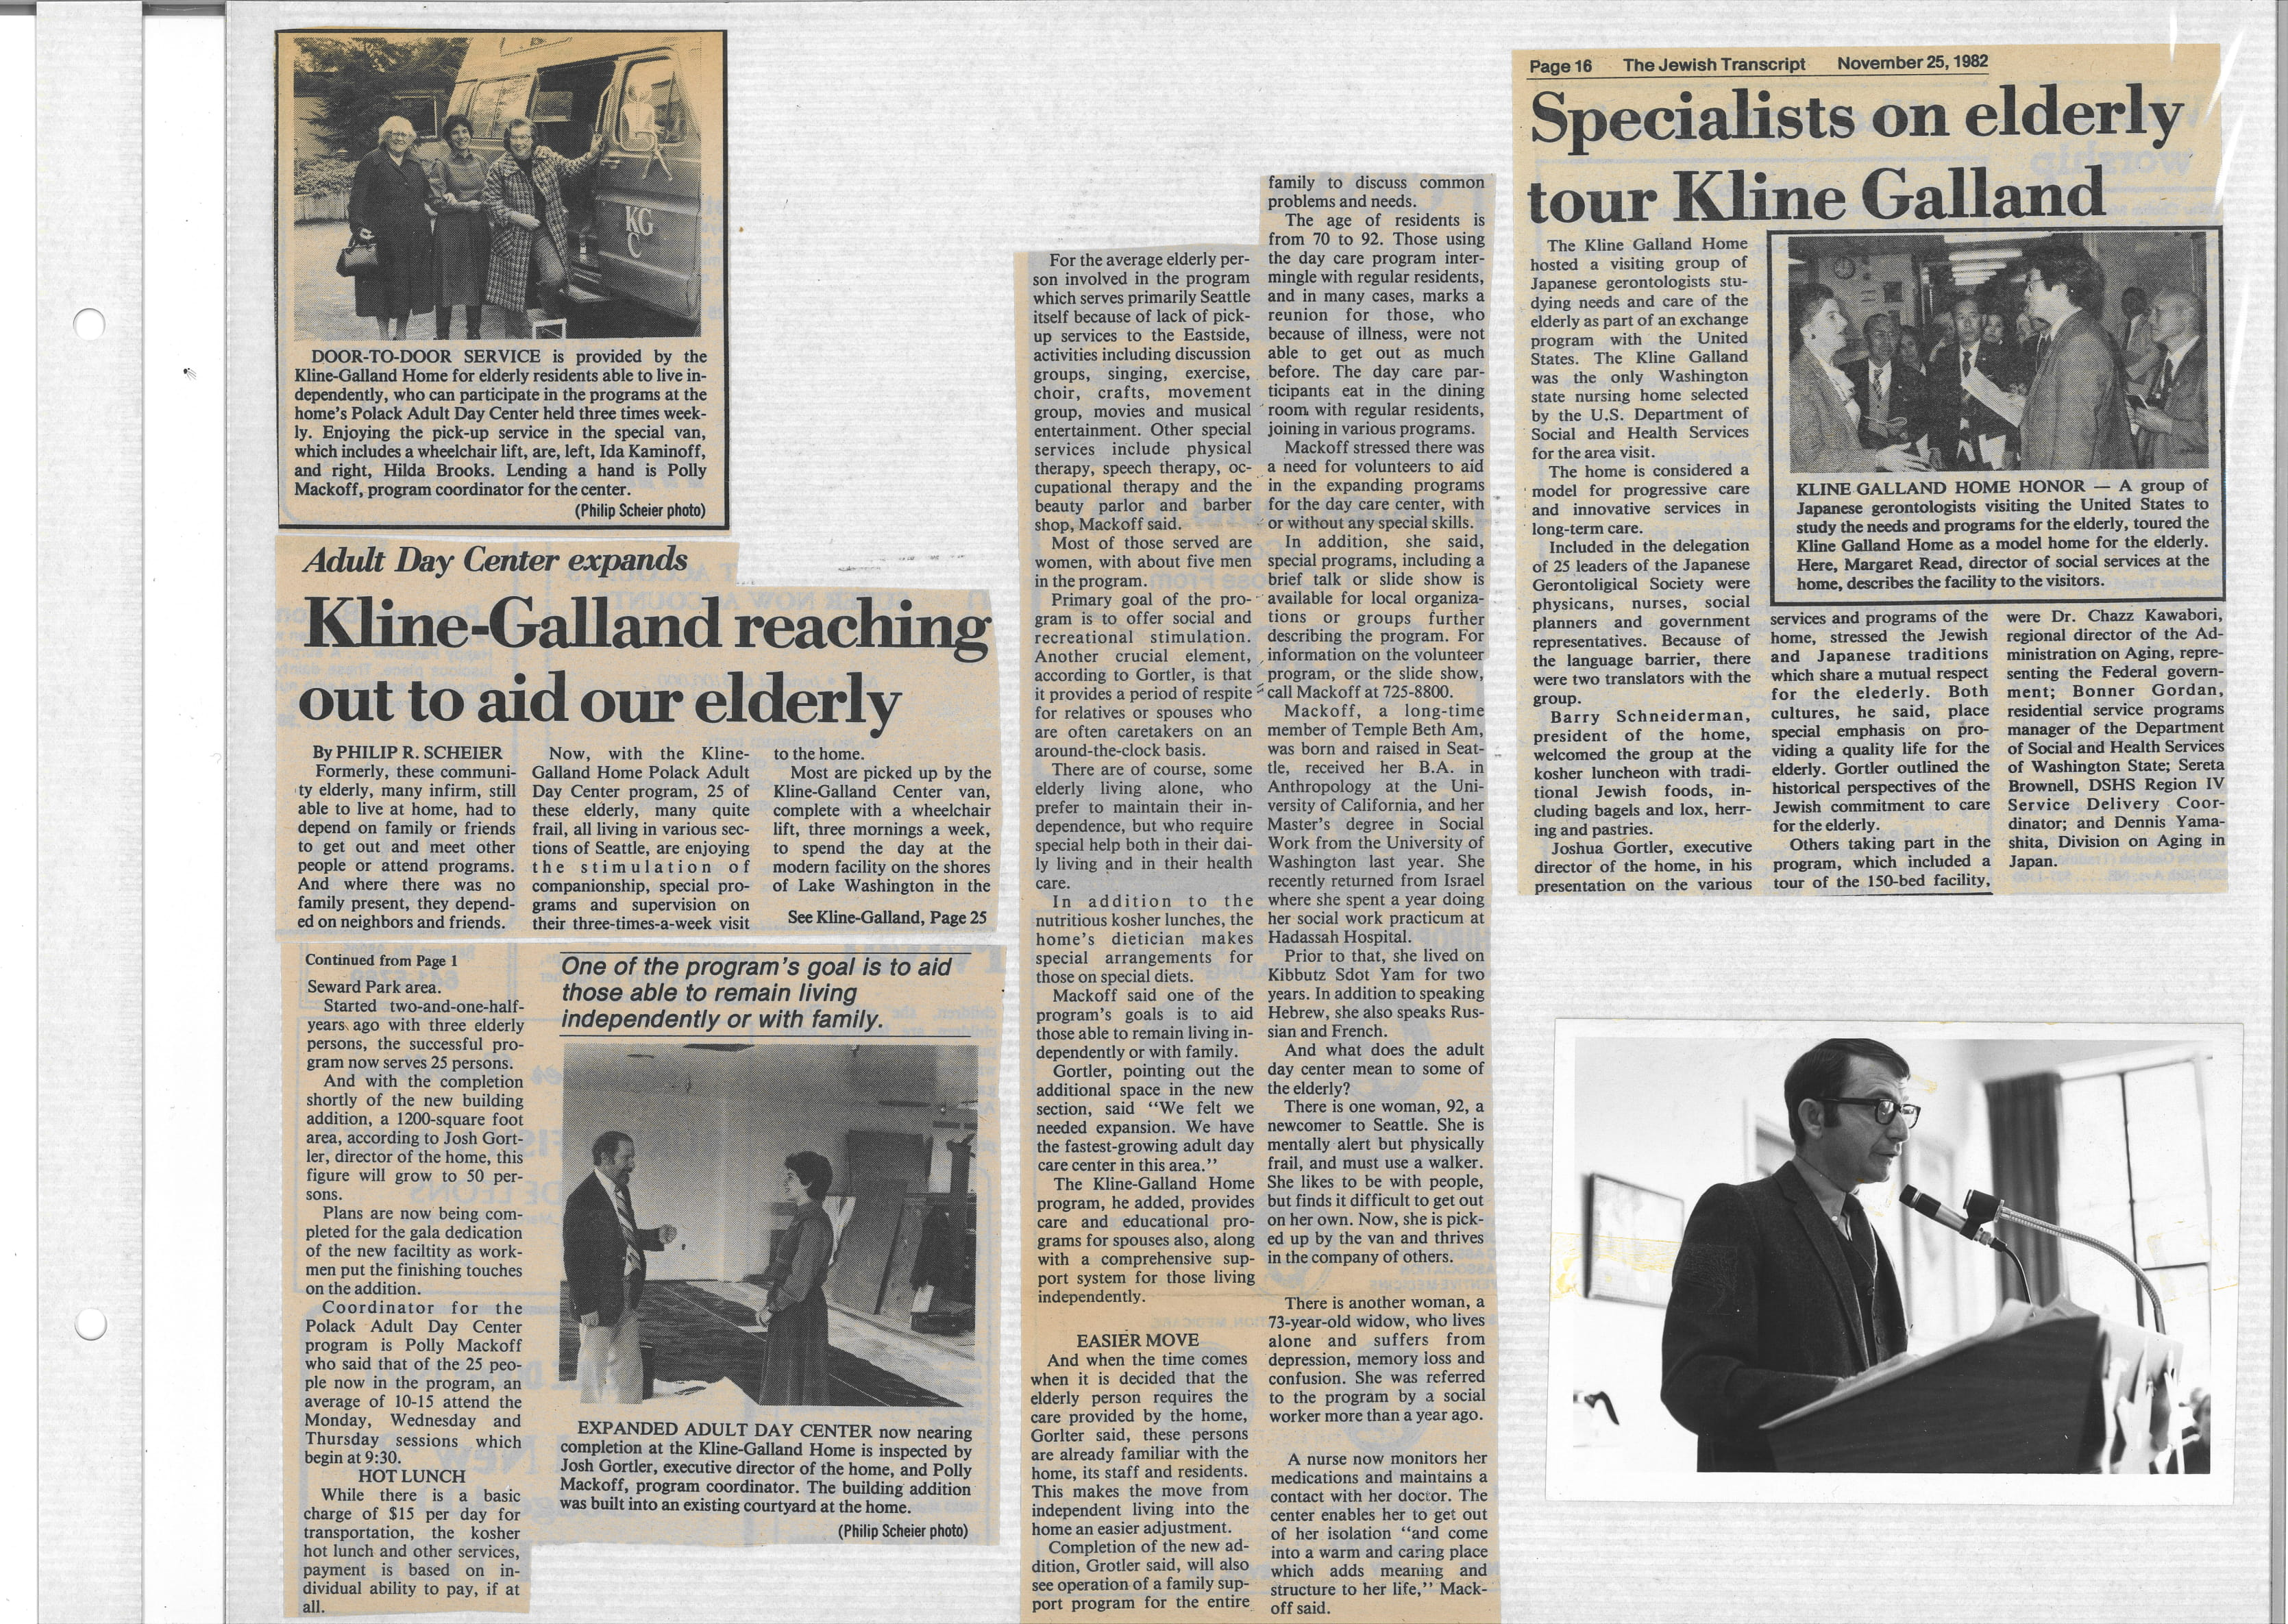 Newspaper clippings on Kline Galland (1982)